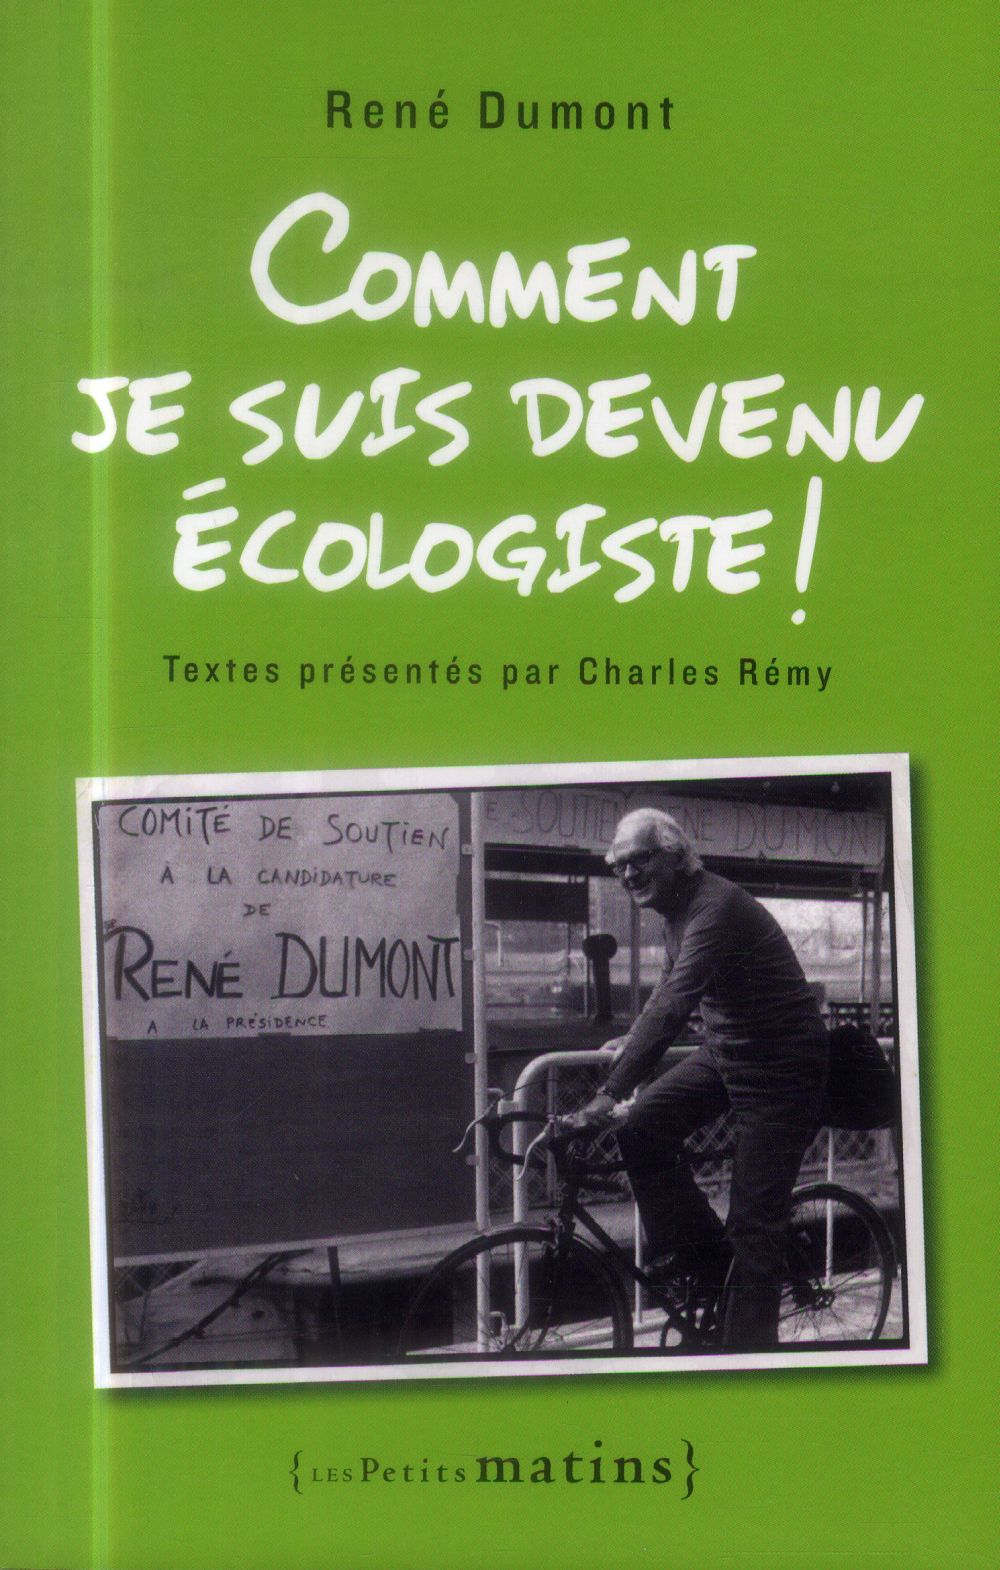 COMMENT JE SUIS DEVENU ECOLOGISTE !